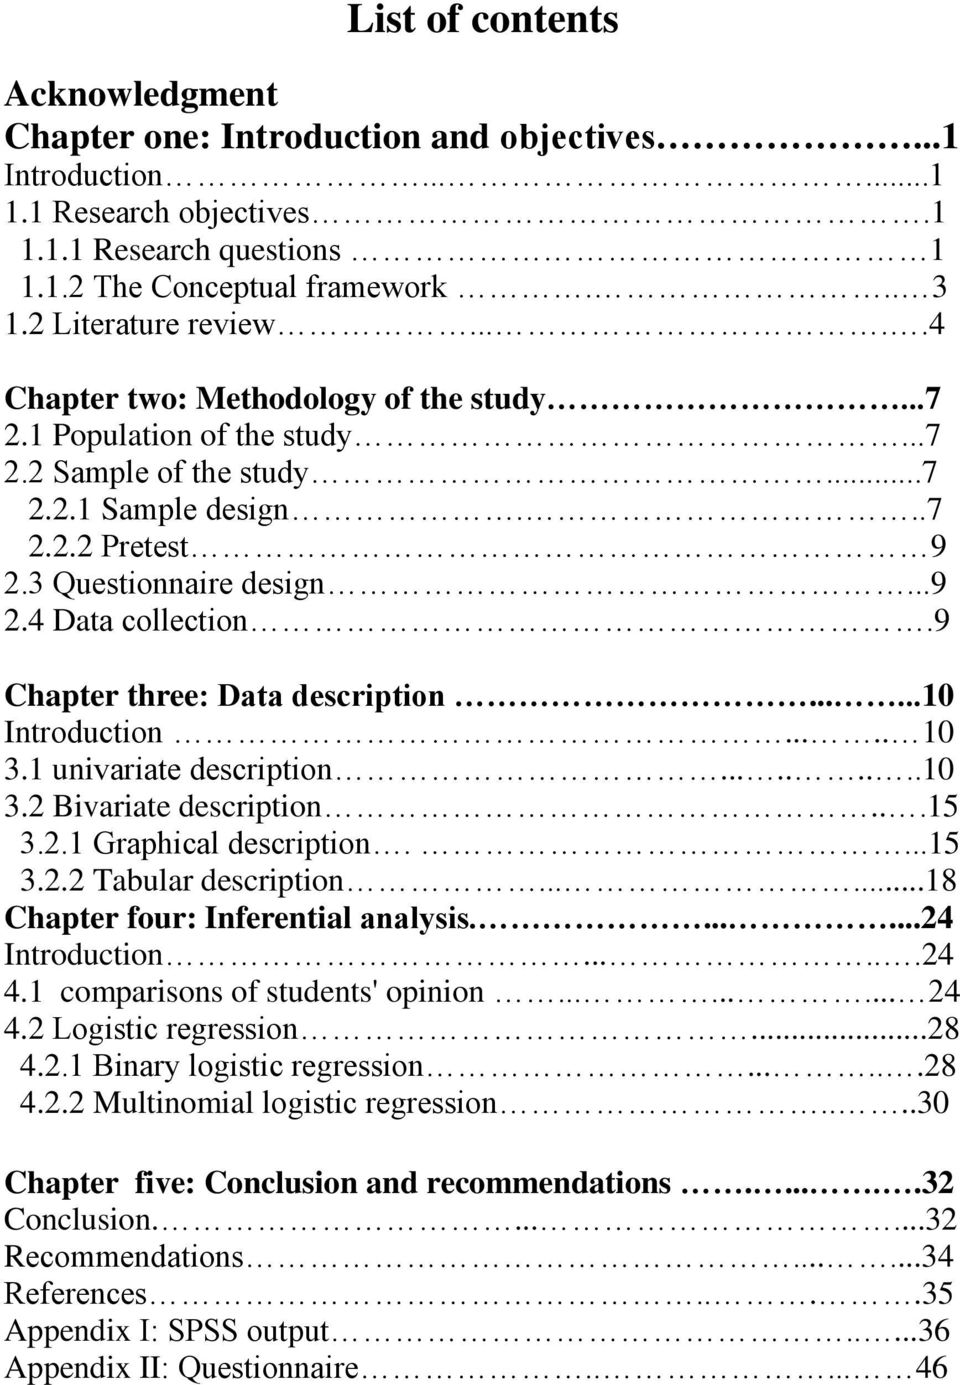 9 Chapter three: Data description......10 Introduction..... 10 3.1 univariate description.........10 3.2 Bivariate description...15 3.2.1 Graphical description....15 3.2.2 Tabular description.